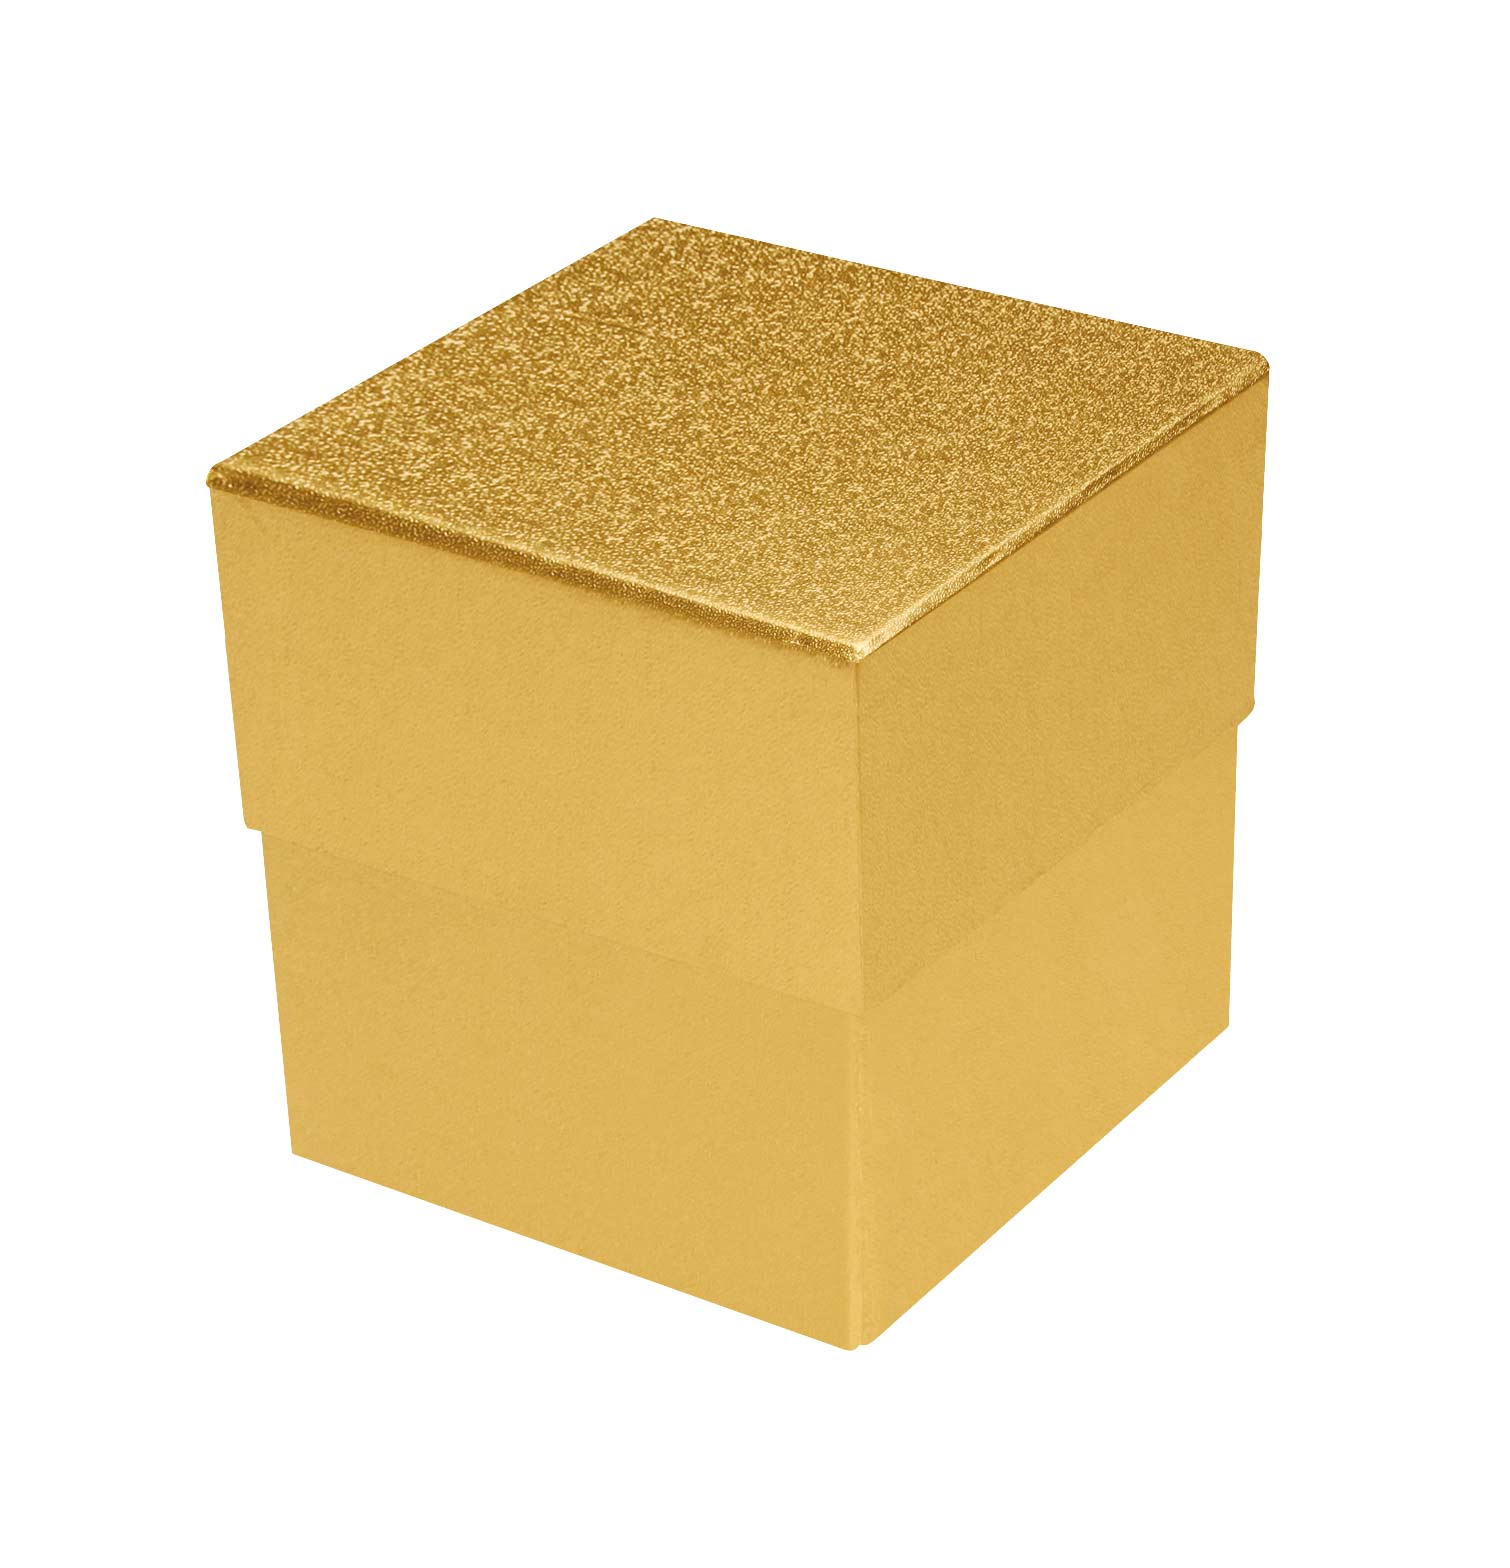 Rigid Set Up Box Cube 3 Tier Petite Gold Qty Case 24